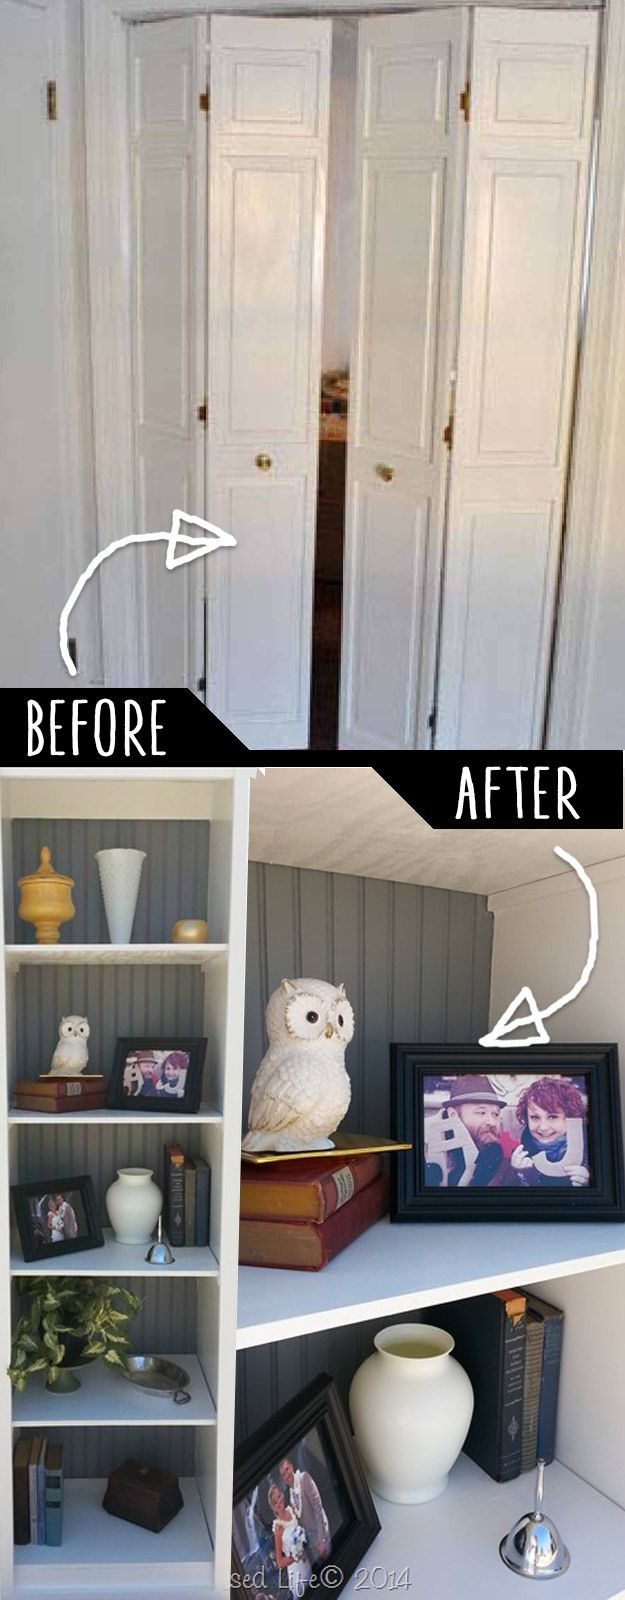 259 Best Images About Diy Ideas On Pinterest Crafts Sharpie Crafts And Refurbished Furniture